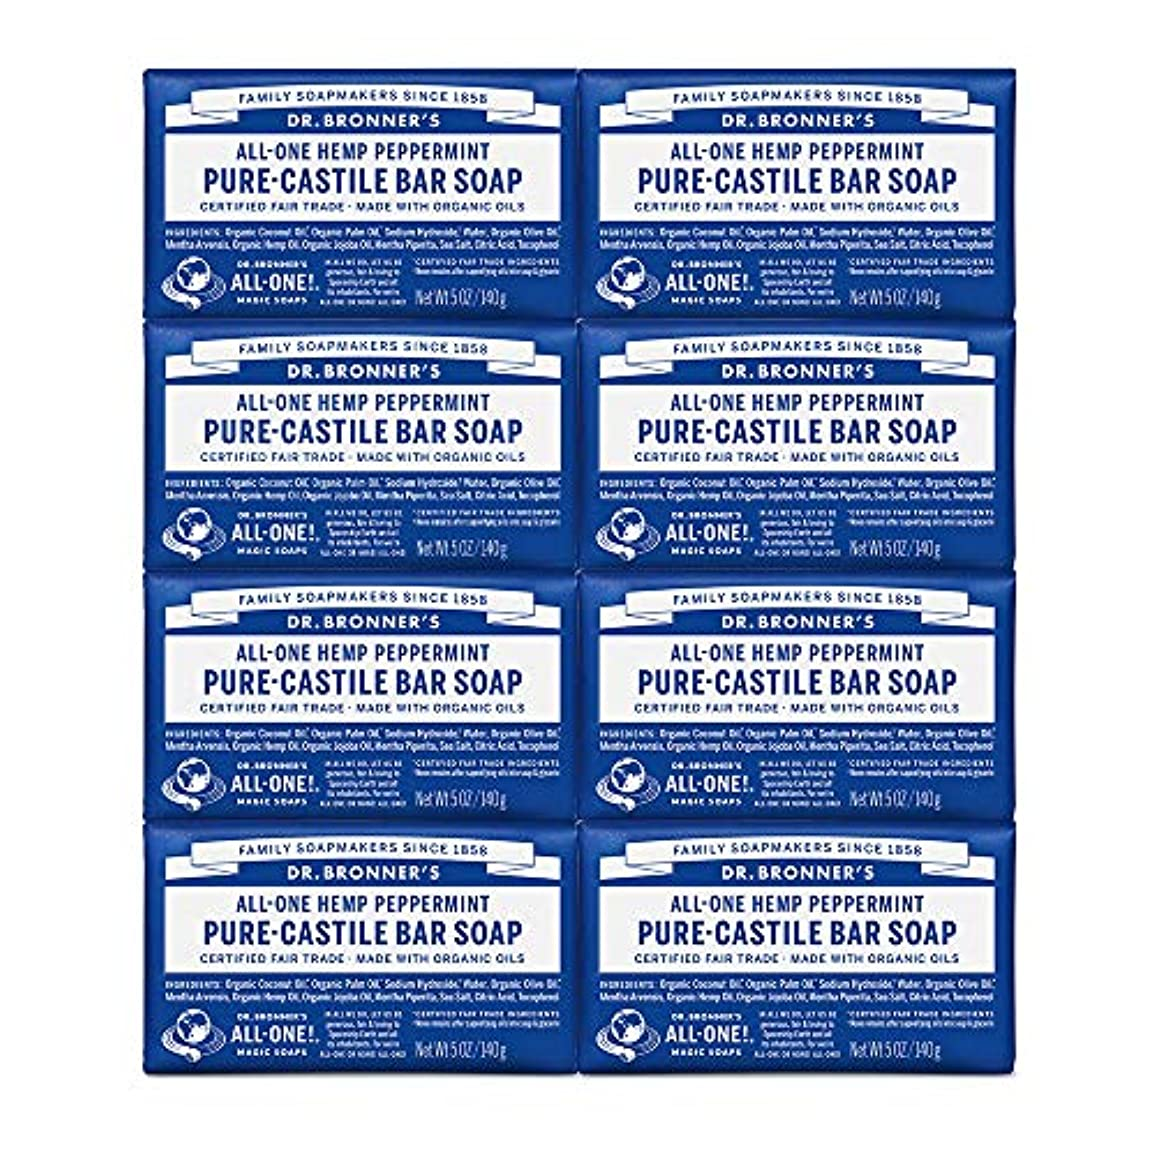 Dr. Bronner's Pure-Castile Bar Soap - Peppermint 5oz. (Pack of 8) by Dr. Bronner's